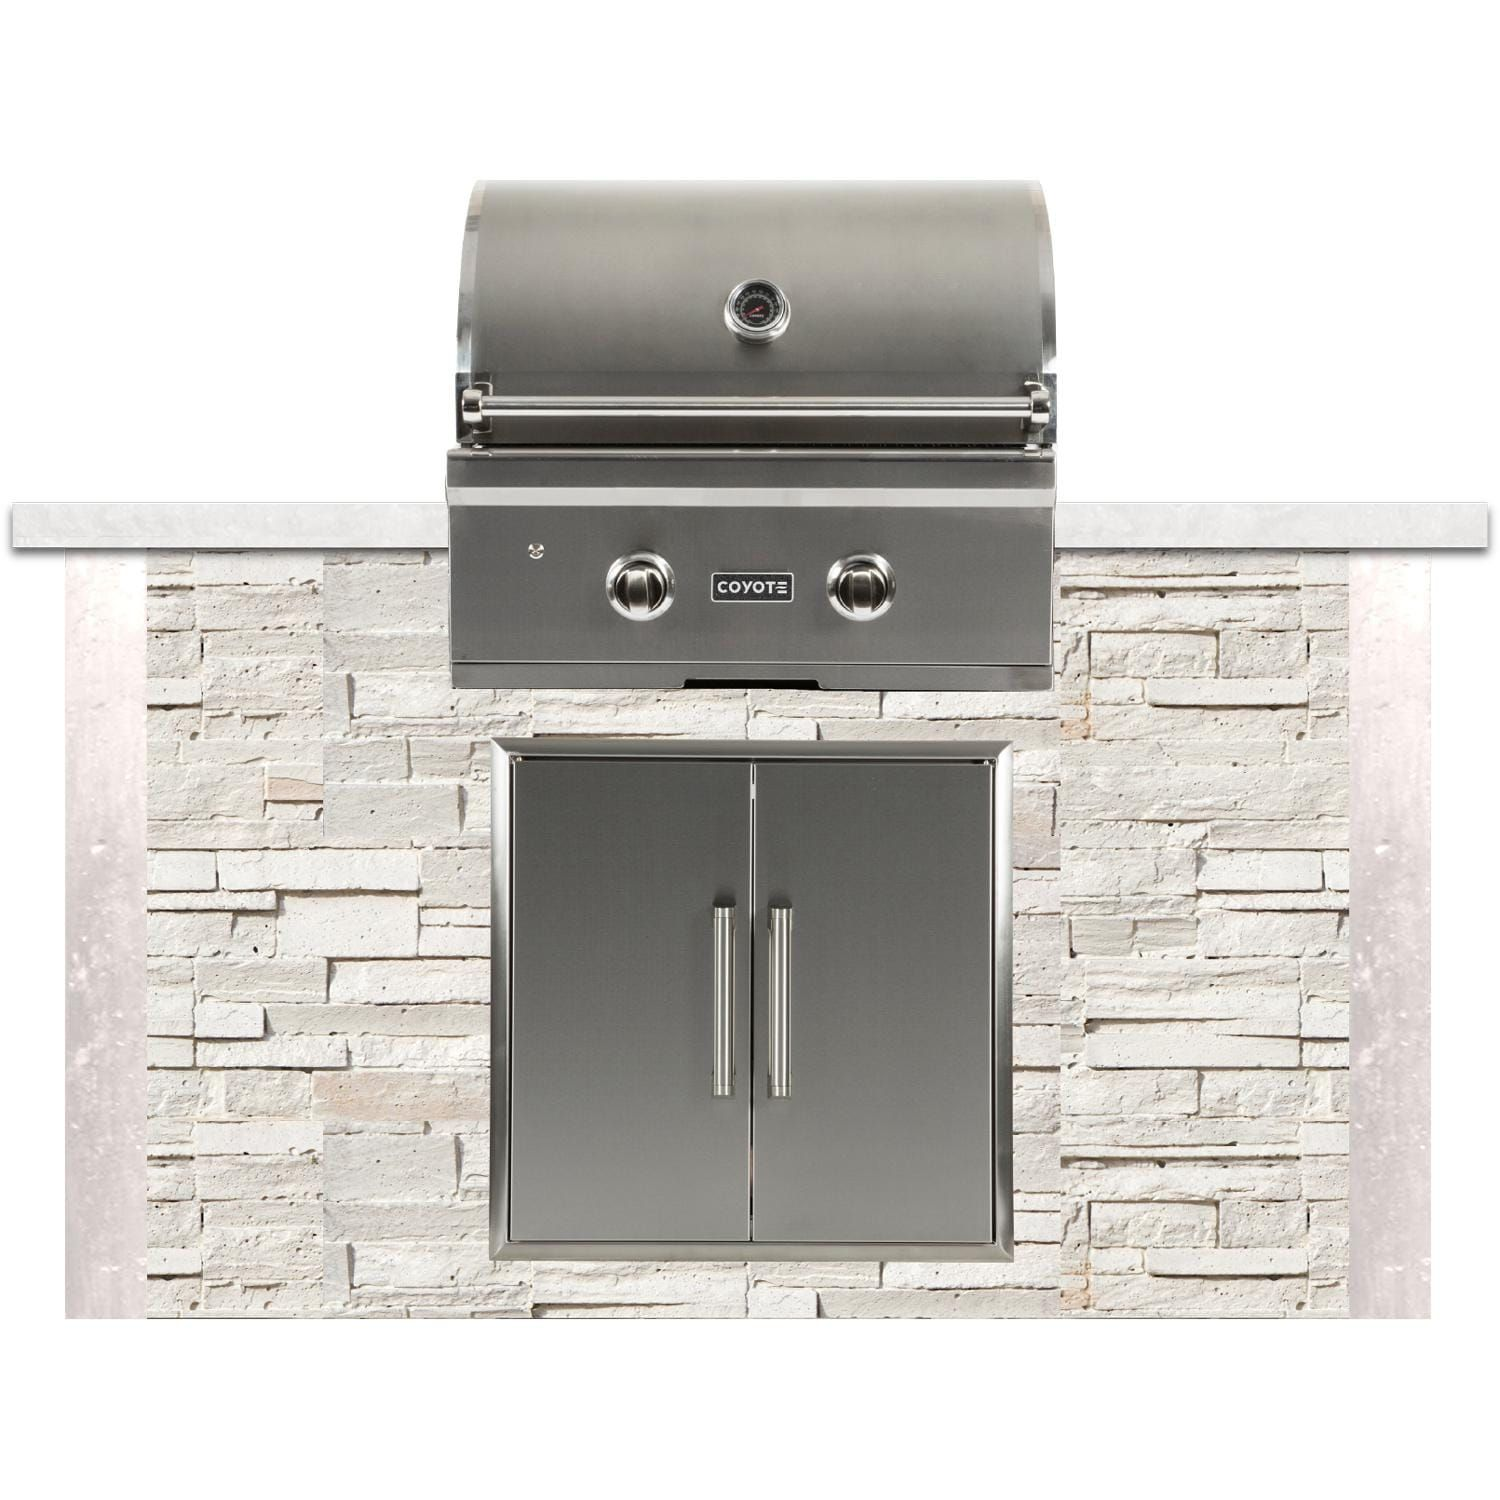 Coyote Ready To Assemble 5 Ft Outdoor Kitchen Island With 28 Inch C Series Propane Gas Grill Stacked Stone Modern White Rtac G5 Sw C1c28lp Bbqguys Outdoor Kitchen Island Outdoor Kitchen Bbq Grill Island